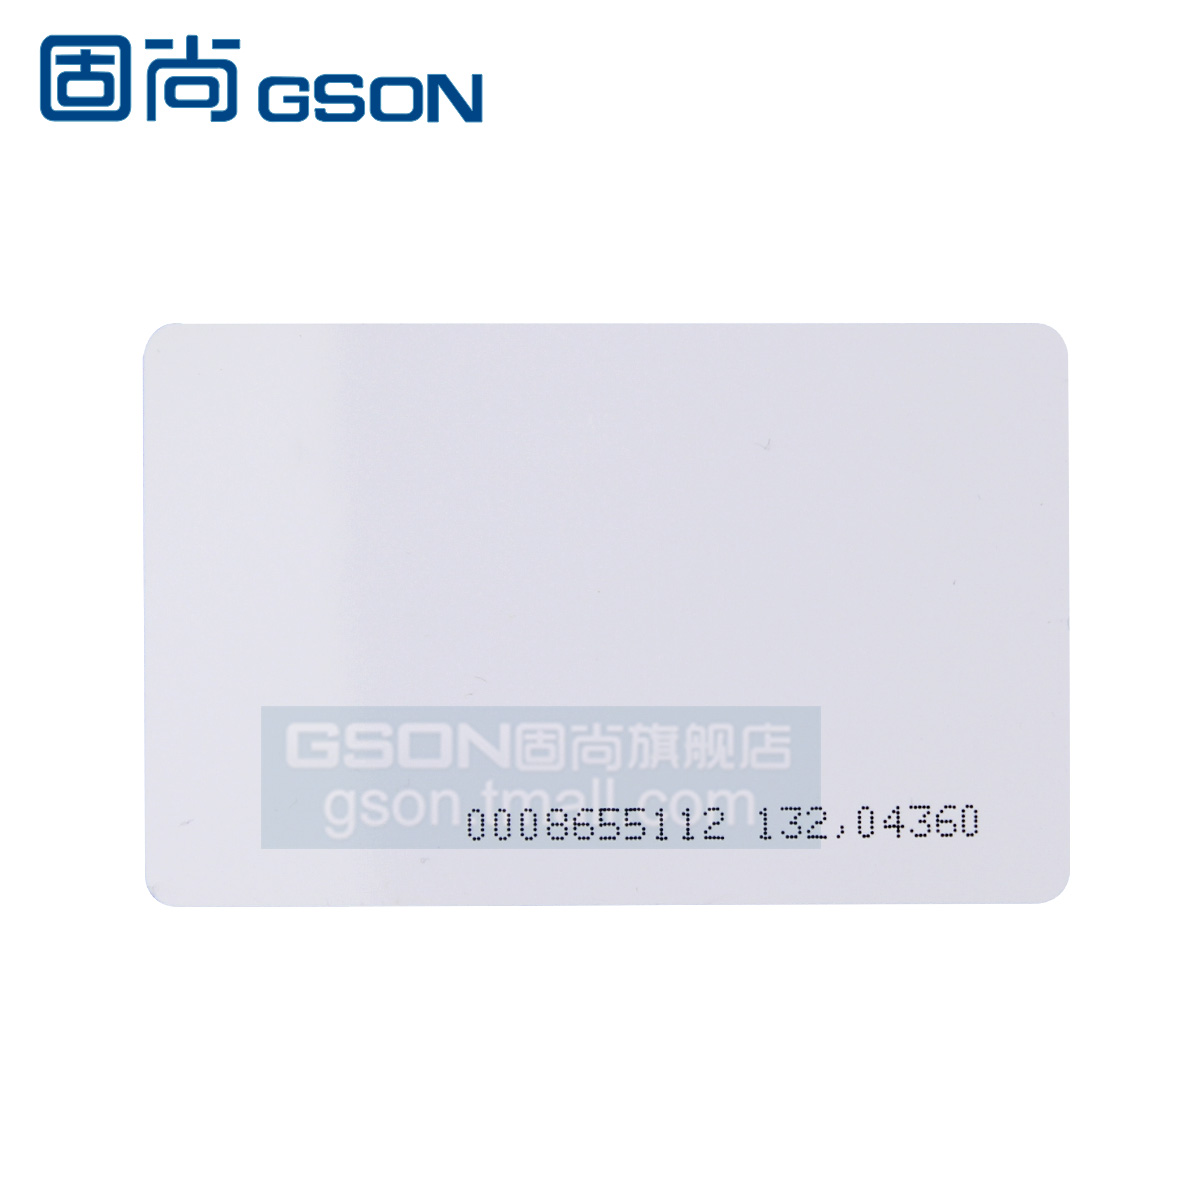 Gson solid yet have userid imported chip card id thin card access control card attendance card access control id card em card